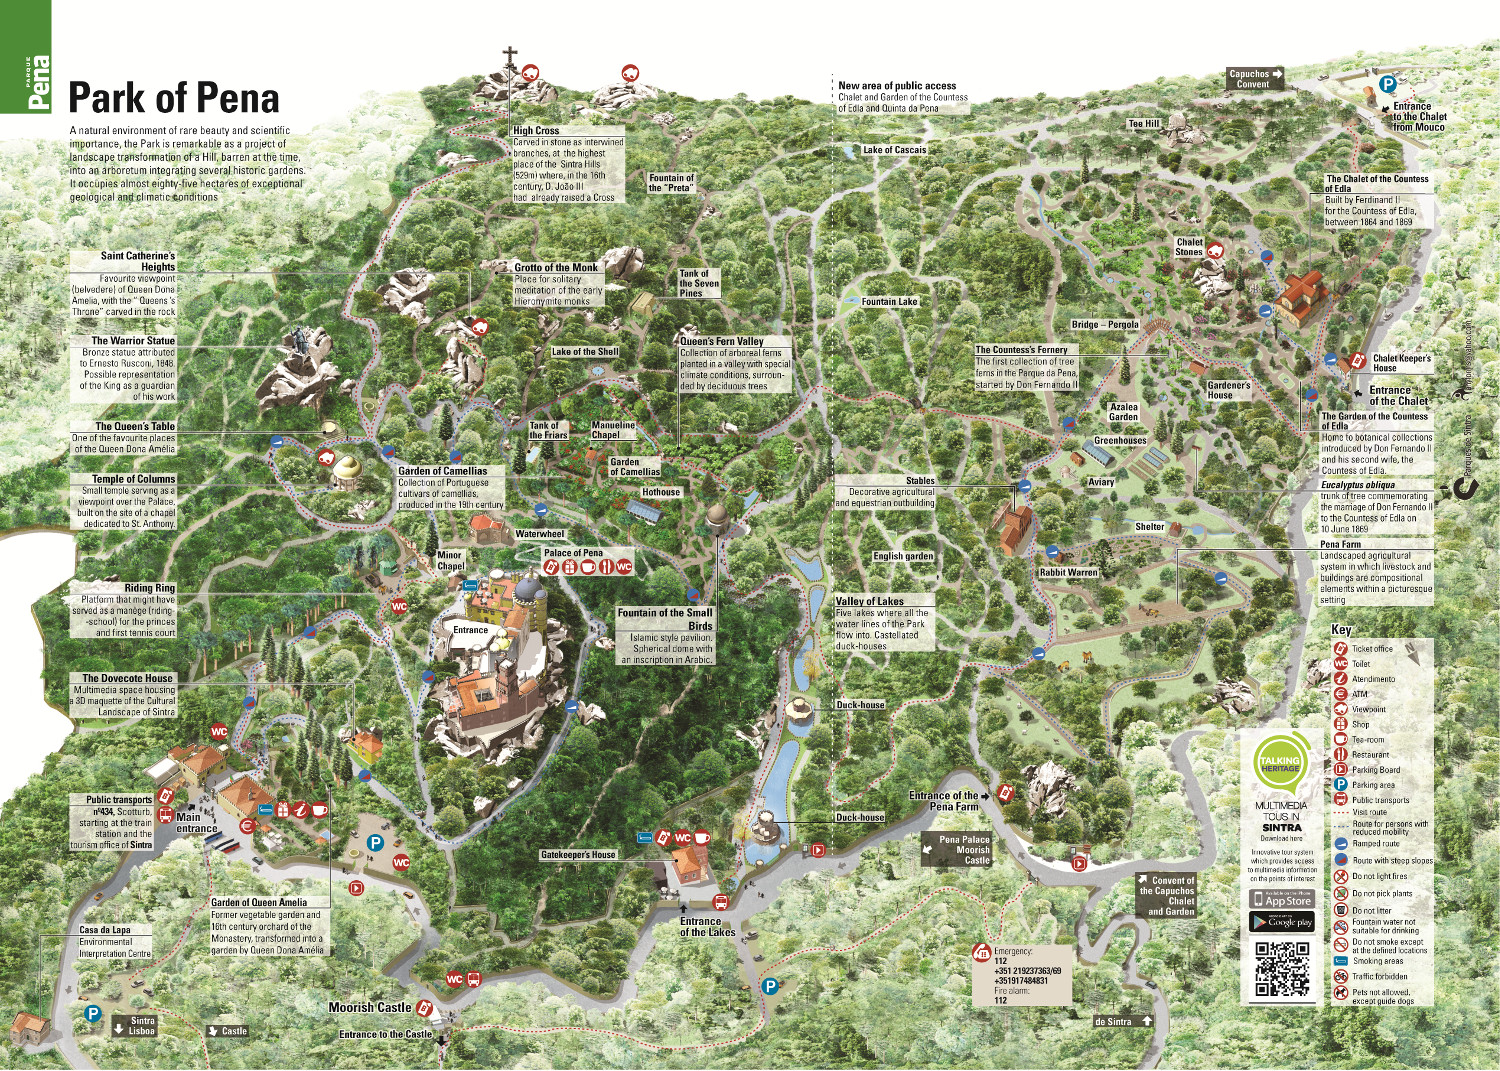 visit_map_park_and_palace_of_pena_back.jpg